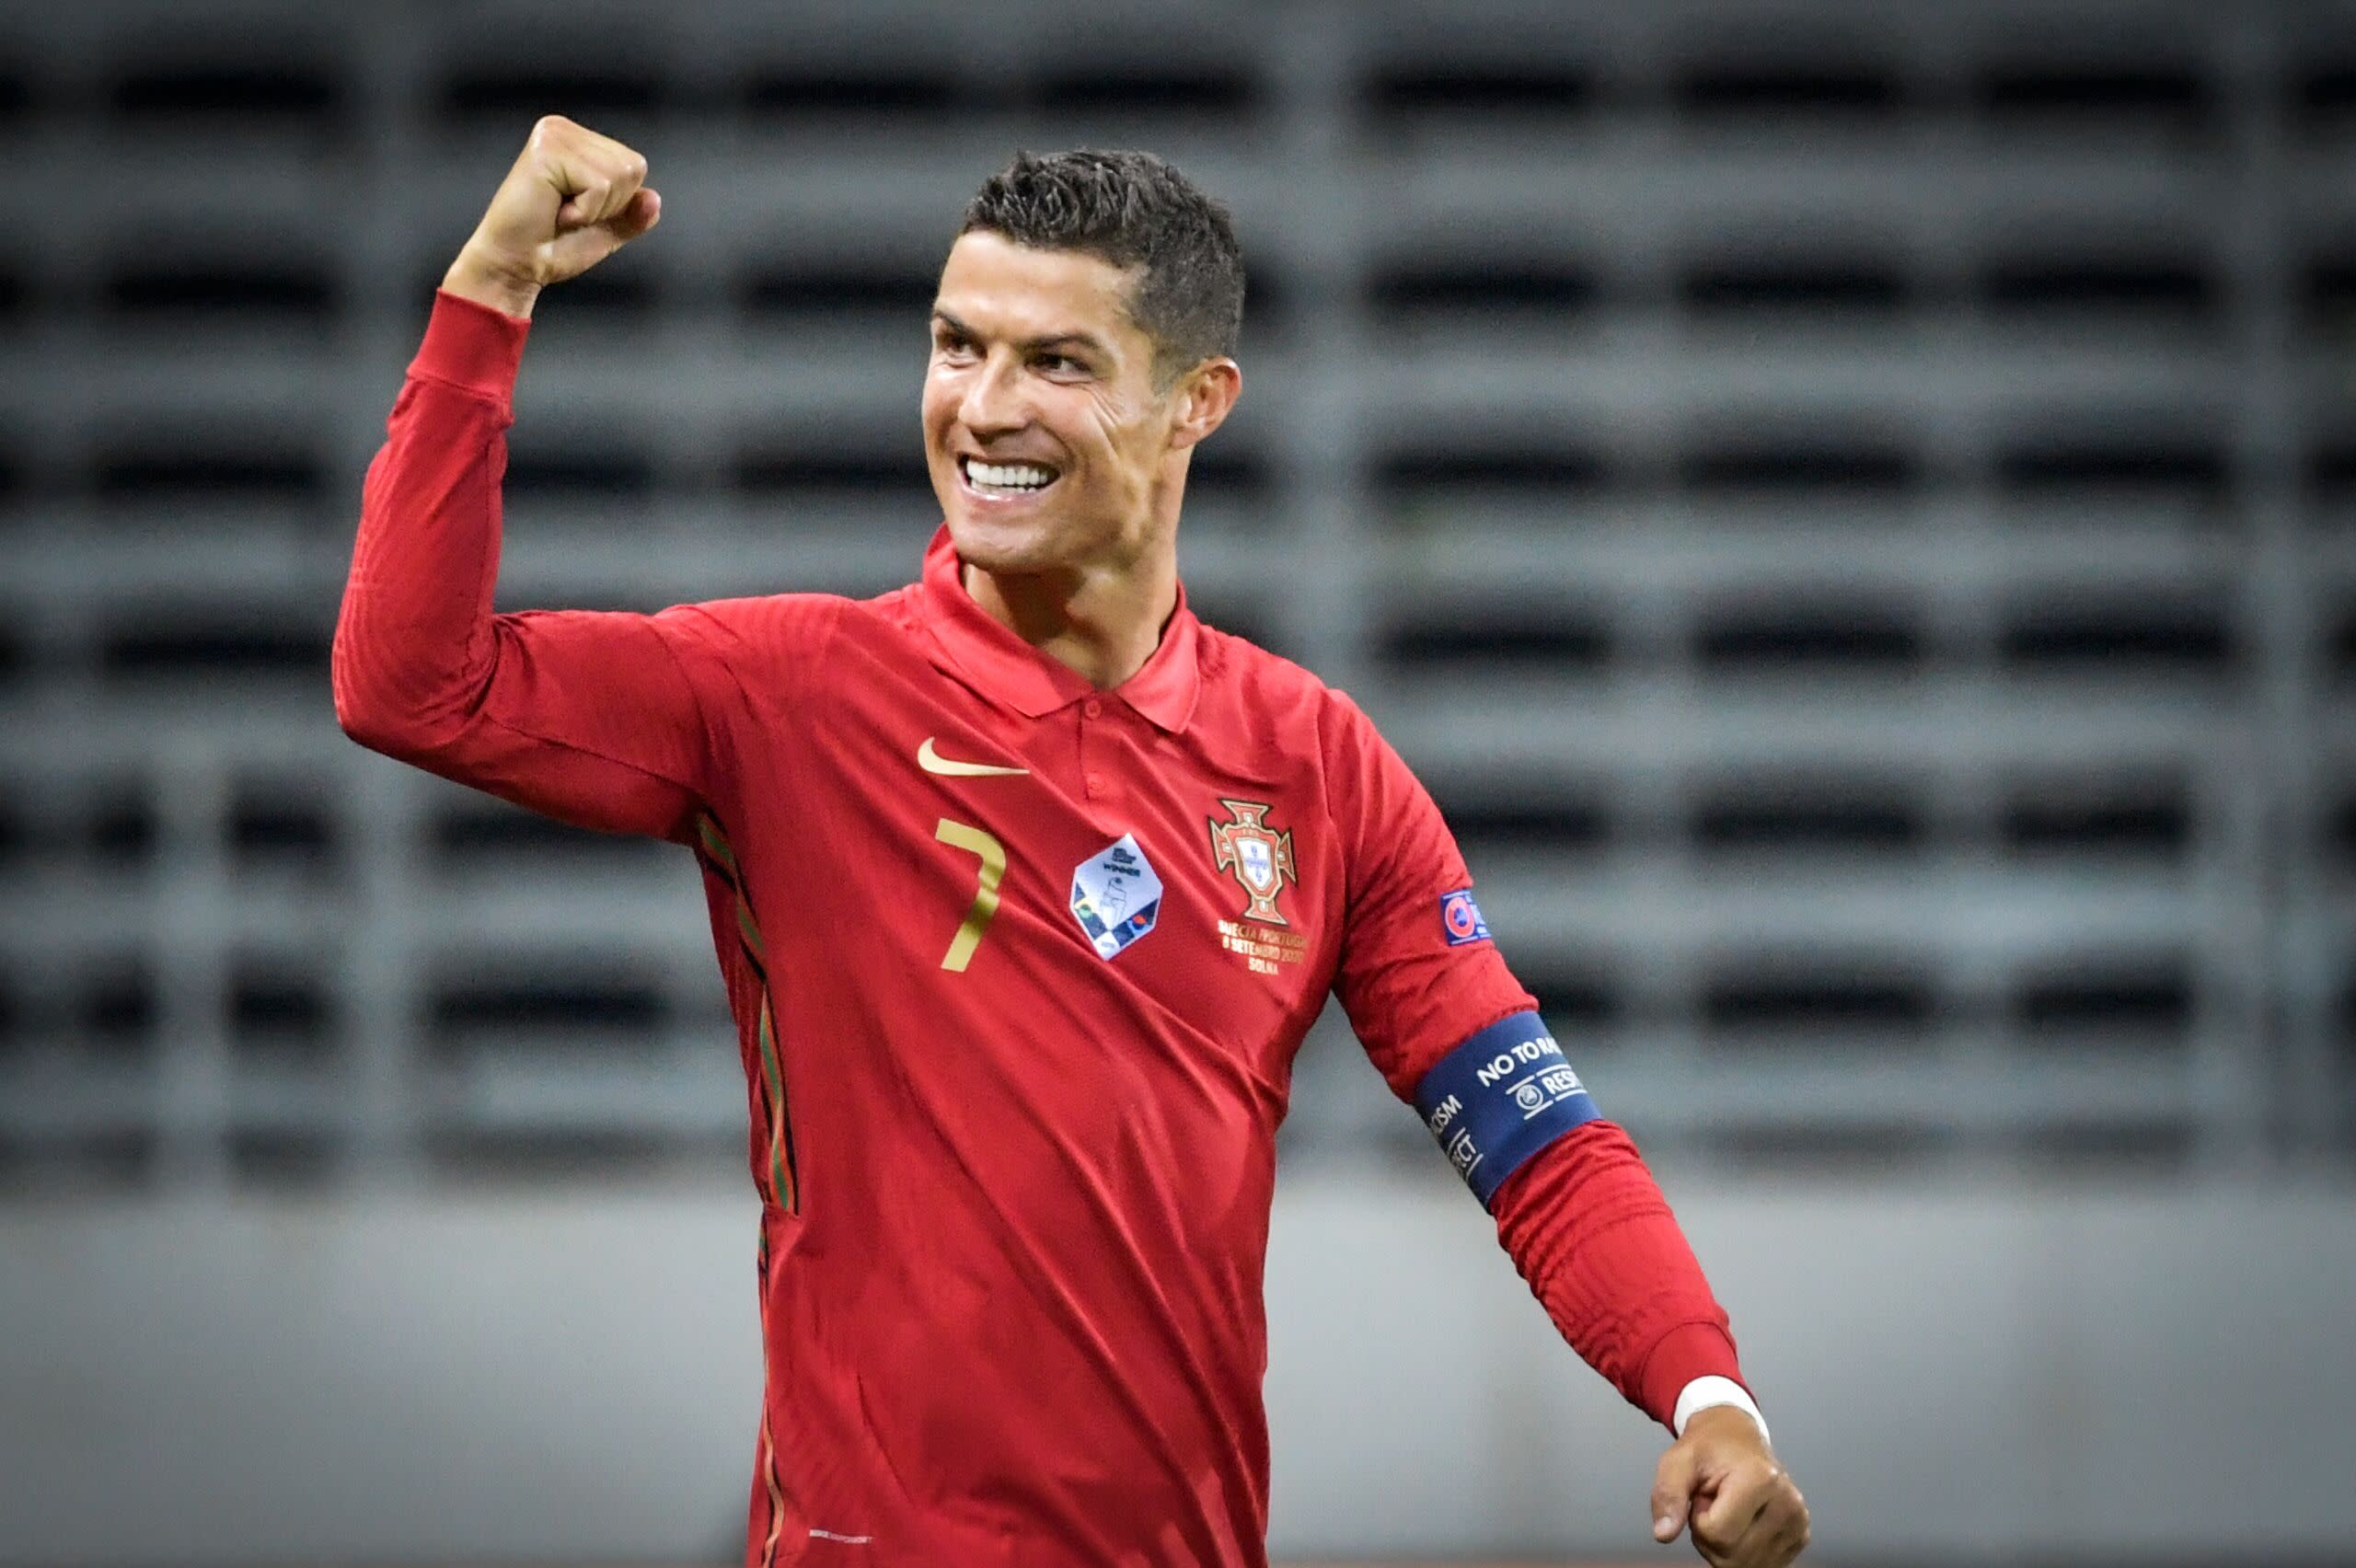 Cristiano Ronaldo scores 100th international goal in Nations League win